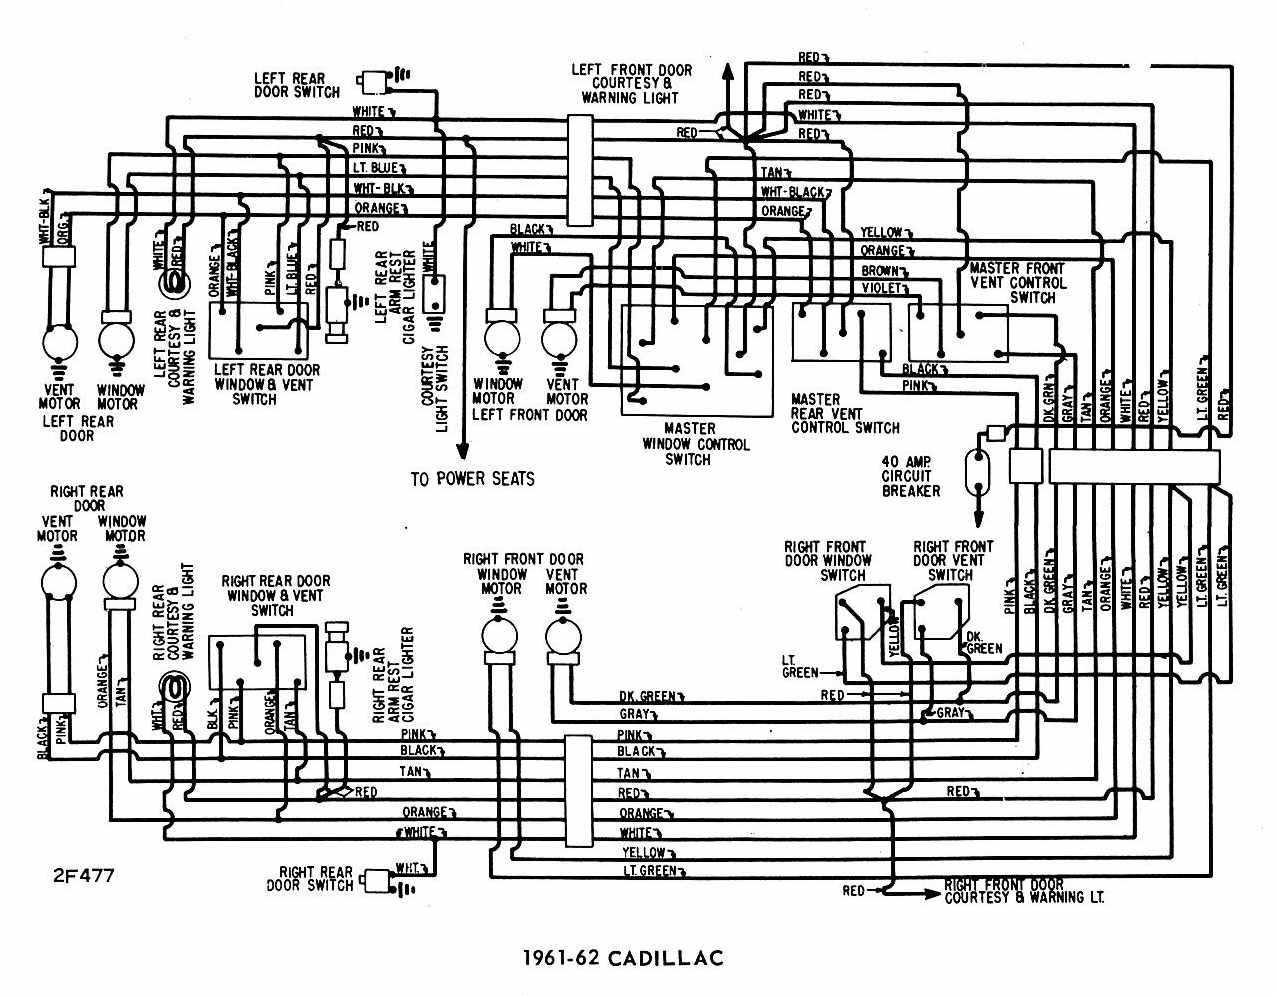 Cadillac Srx Wiring Diagram Anything Diagrams Car Manuals Pdf Fault Codes Rh Automotive Net 2013